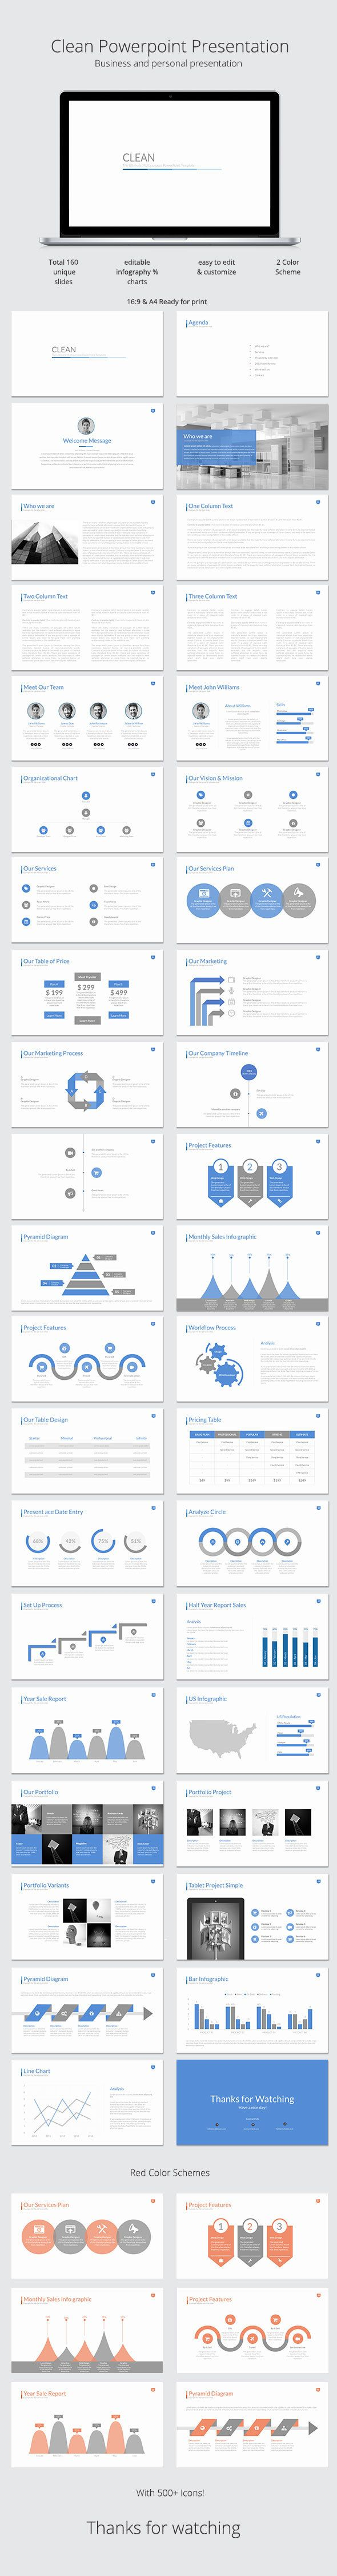 Coolmathgamesus  Prepossessing  Ideas About Powerpoint Presentations On Pinterest With Exquisite Clean Powerpoint Template With Lovely Black Hole Powerpoint Also Firefighter Training Powerpoints In Addition Th Grade Math Jeopardy Powerpoint And Powerpoint Template Games As Well As Create A Word Cloud In Powerpoint Additionally Microsoft Powerpoint Presentation Download From Pinterestcom With Coolmathgamesus  Exquisite  Ideas About Powerpoint Presentations On Pinterest With Lovely Clean Powerpoint Template And Prepossessing Black Hole Powerpoint Also Firefighter Training Powerpoints In Addition Th Grade Math Jeopardy Powerpoint From Pinterestcom